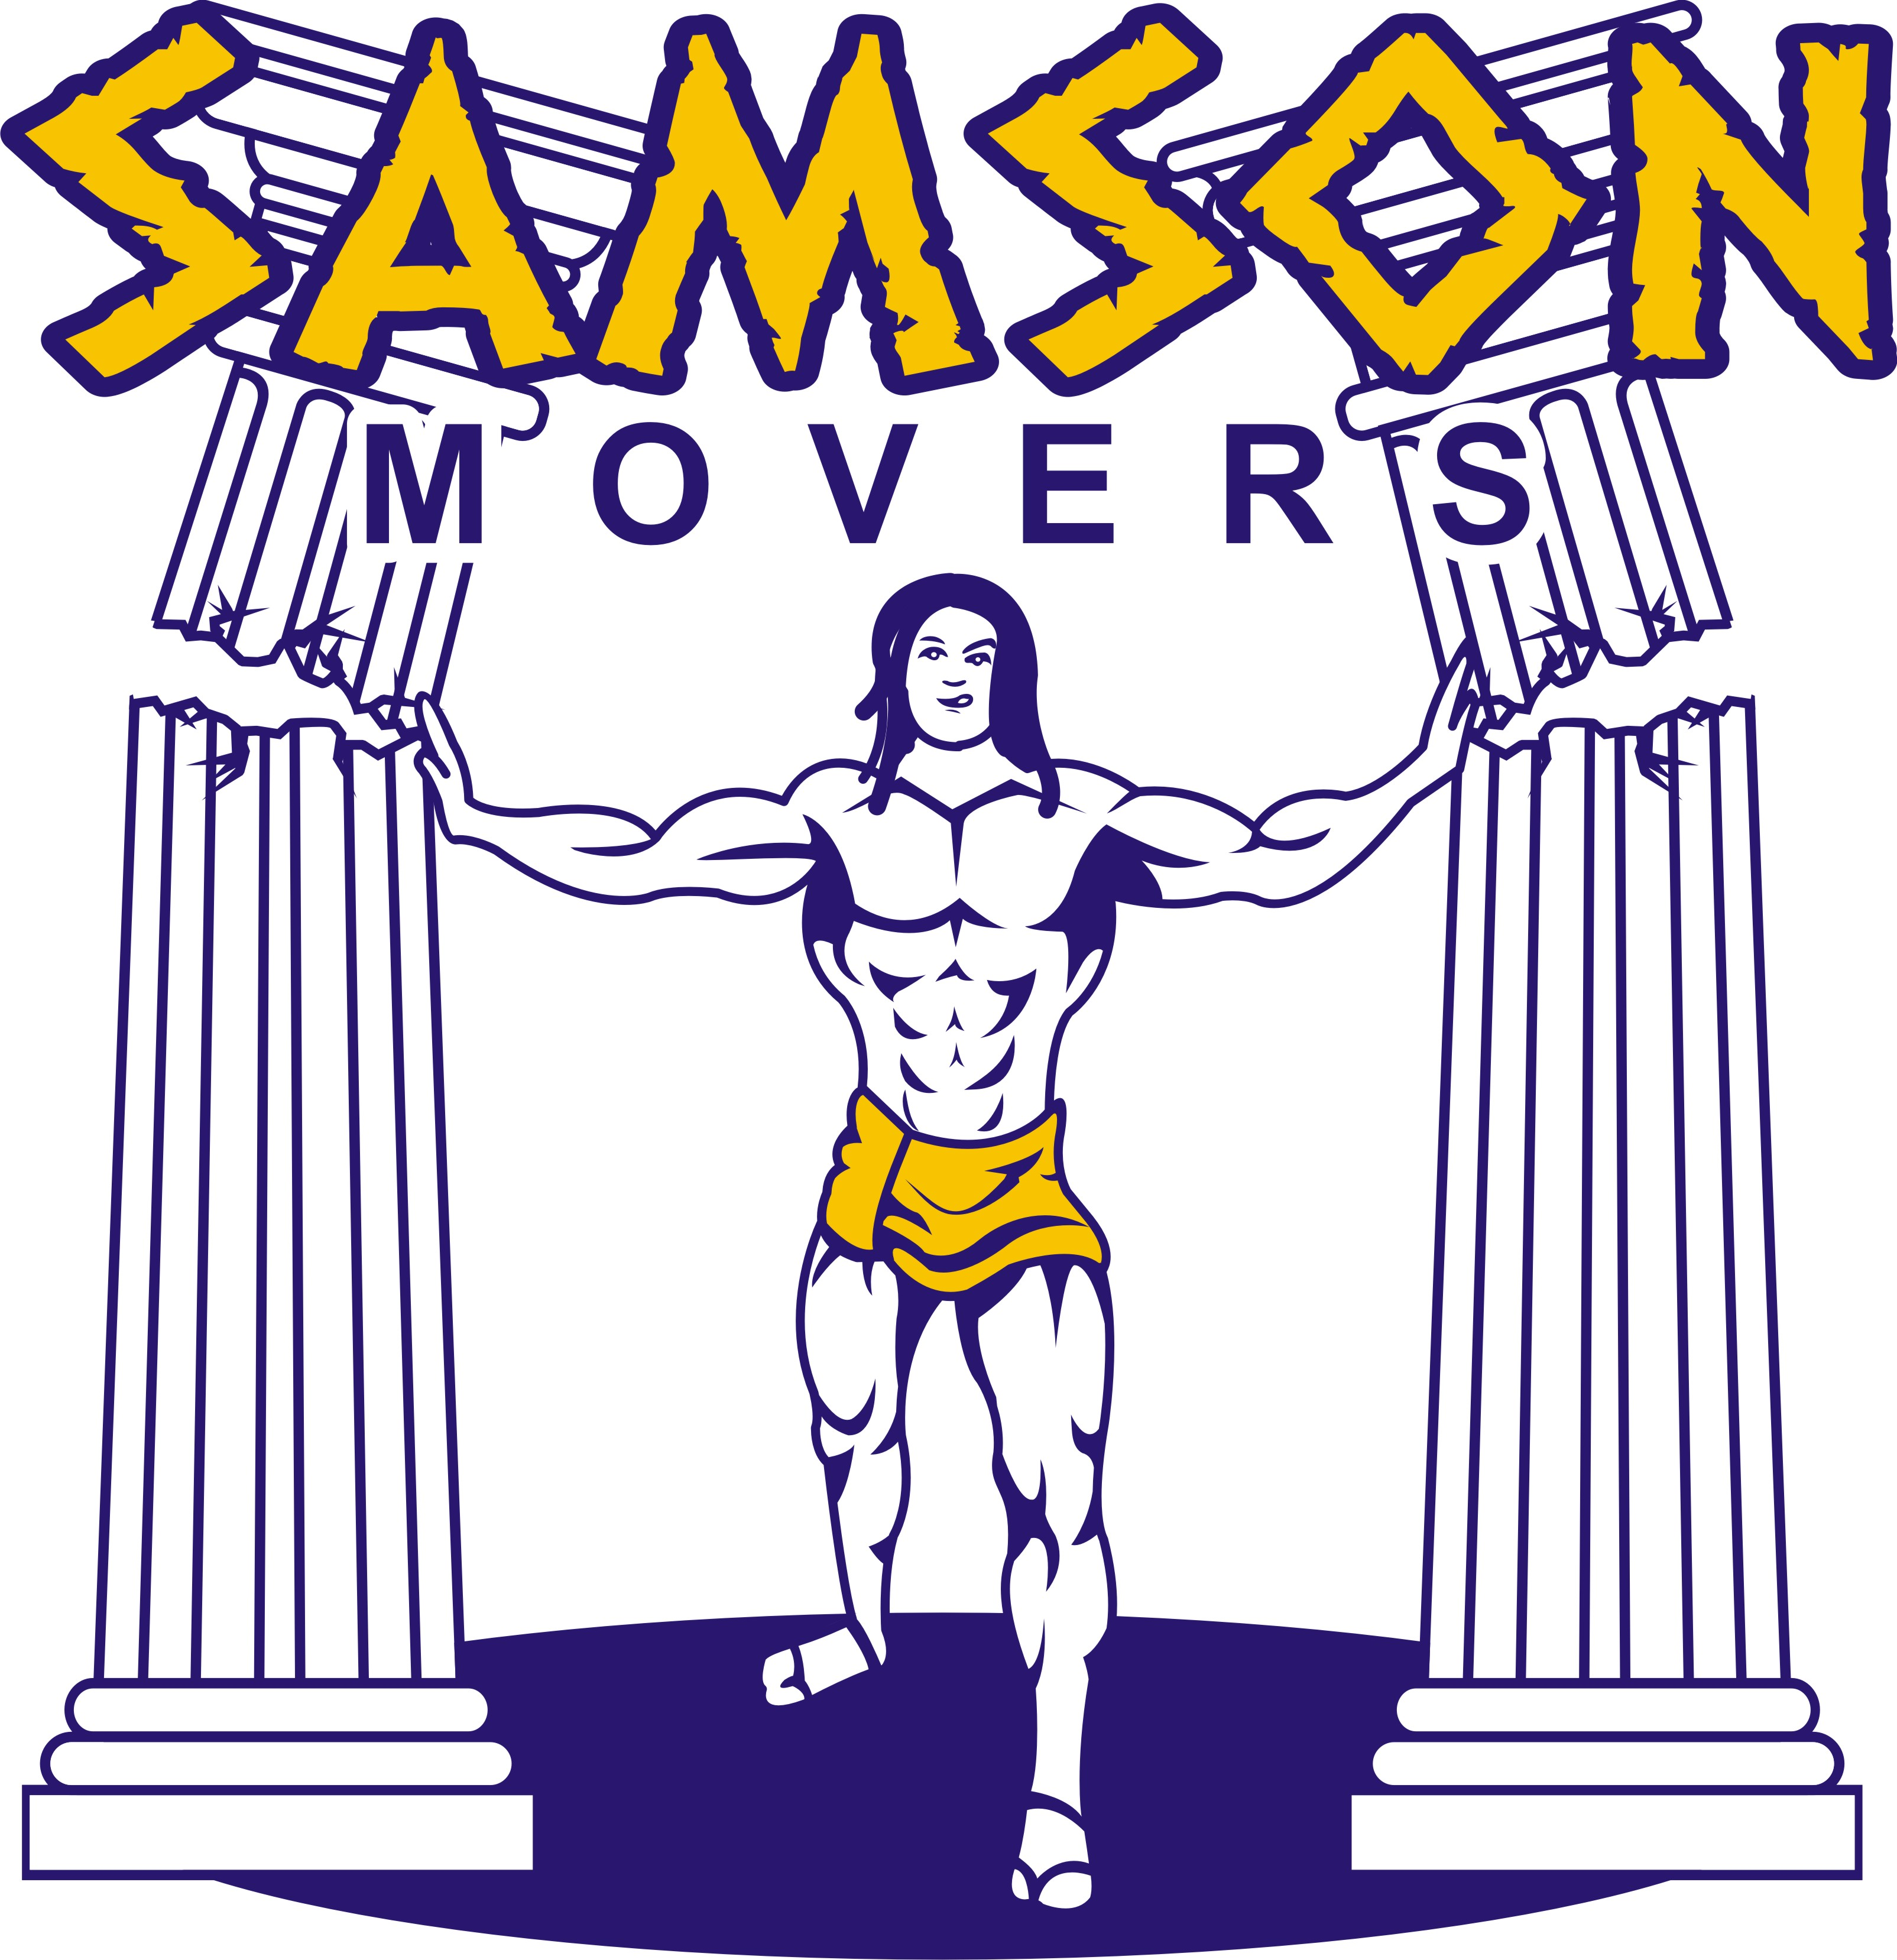 Samson Movers